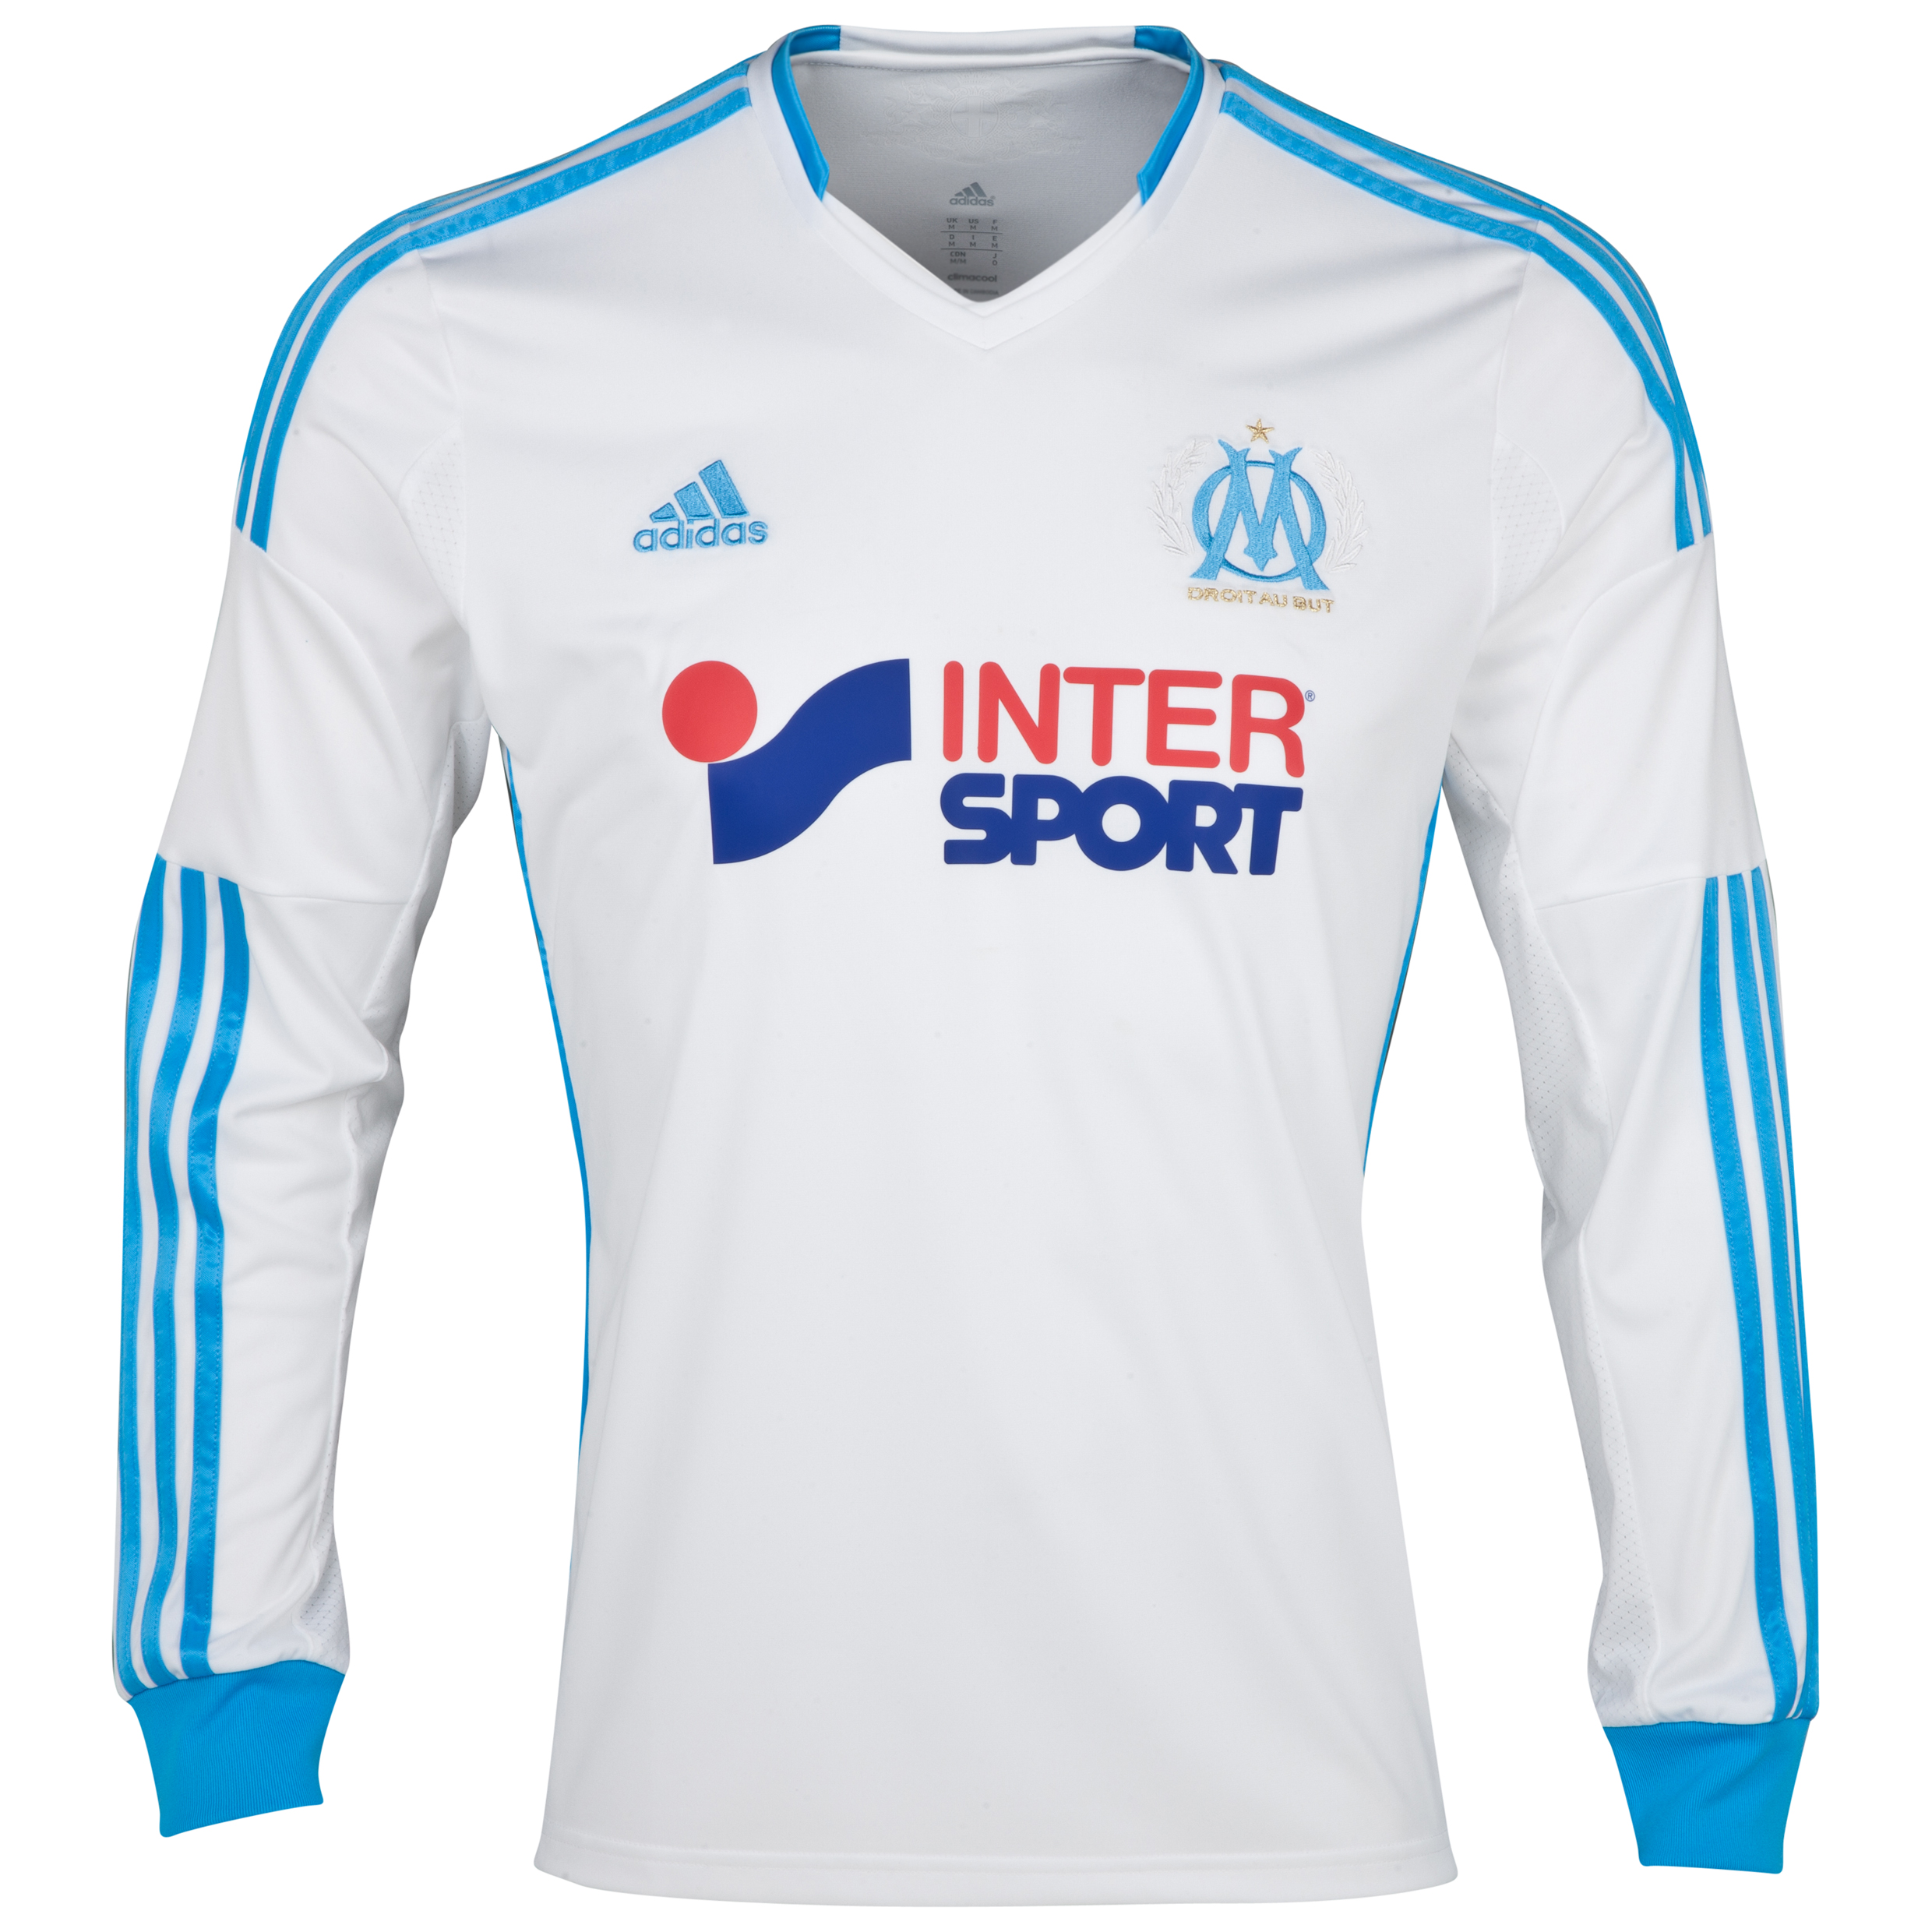 Olympique de Marseille Home Shirt LS 2013/14 - Mens White